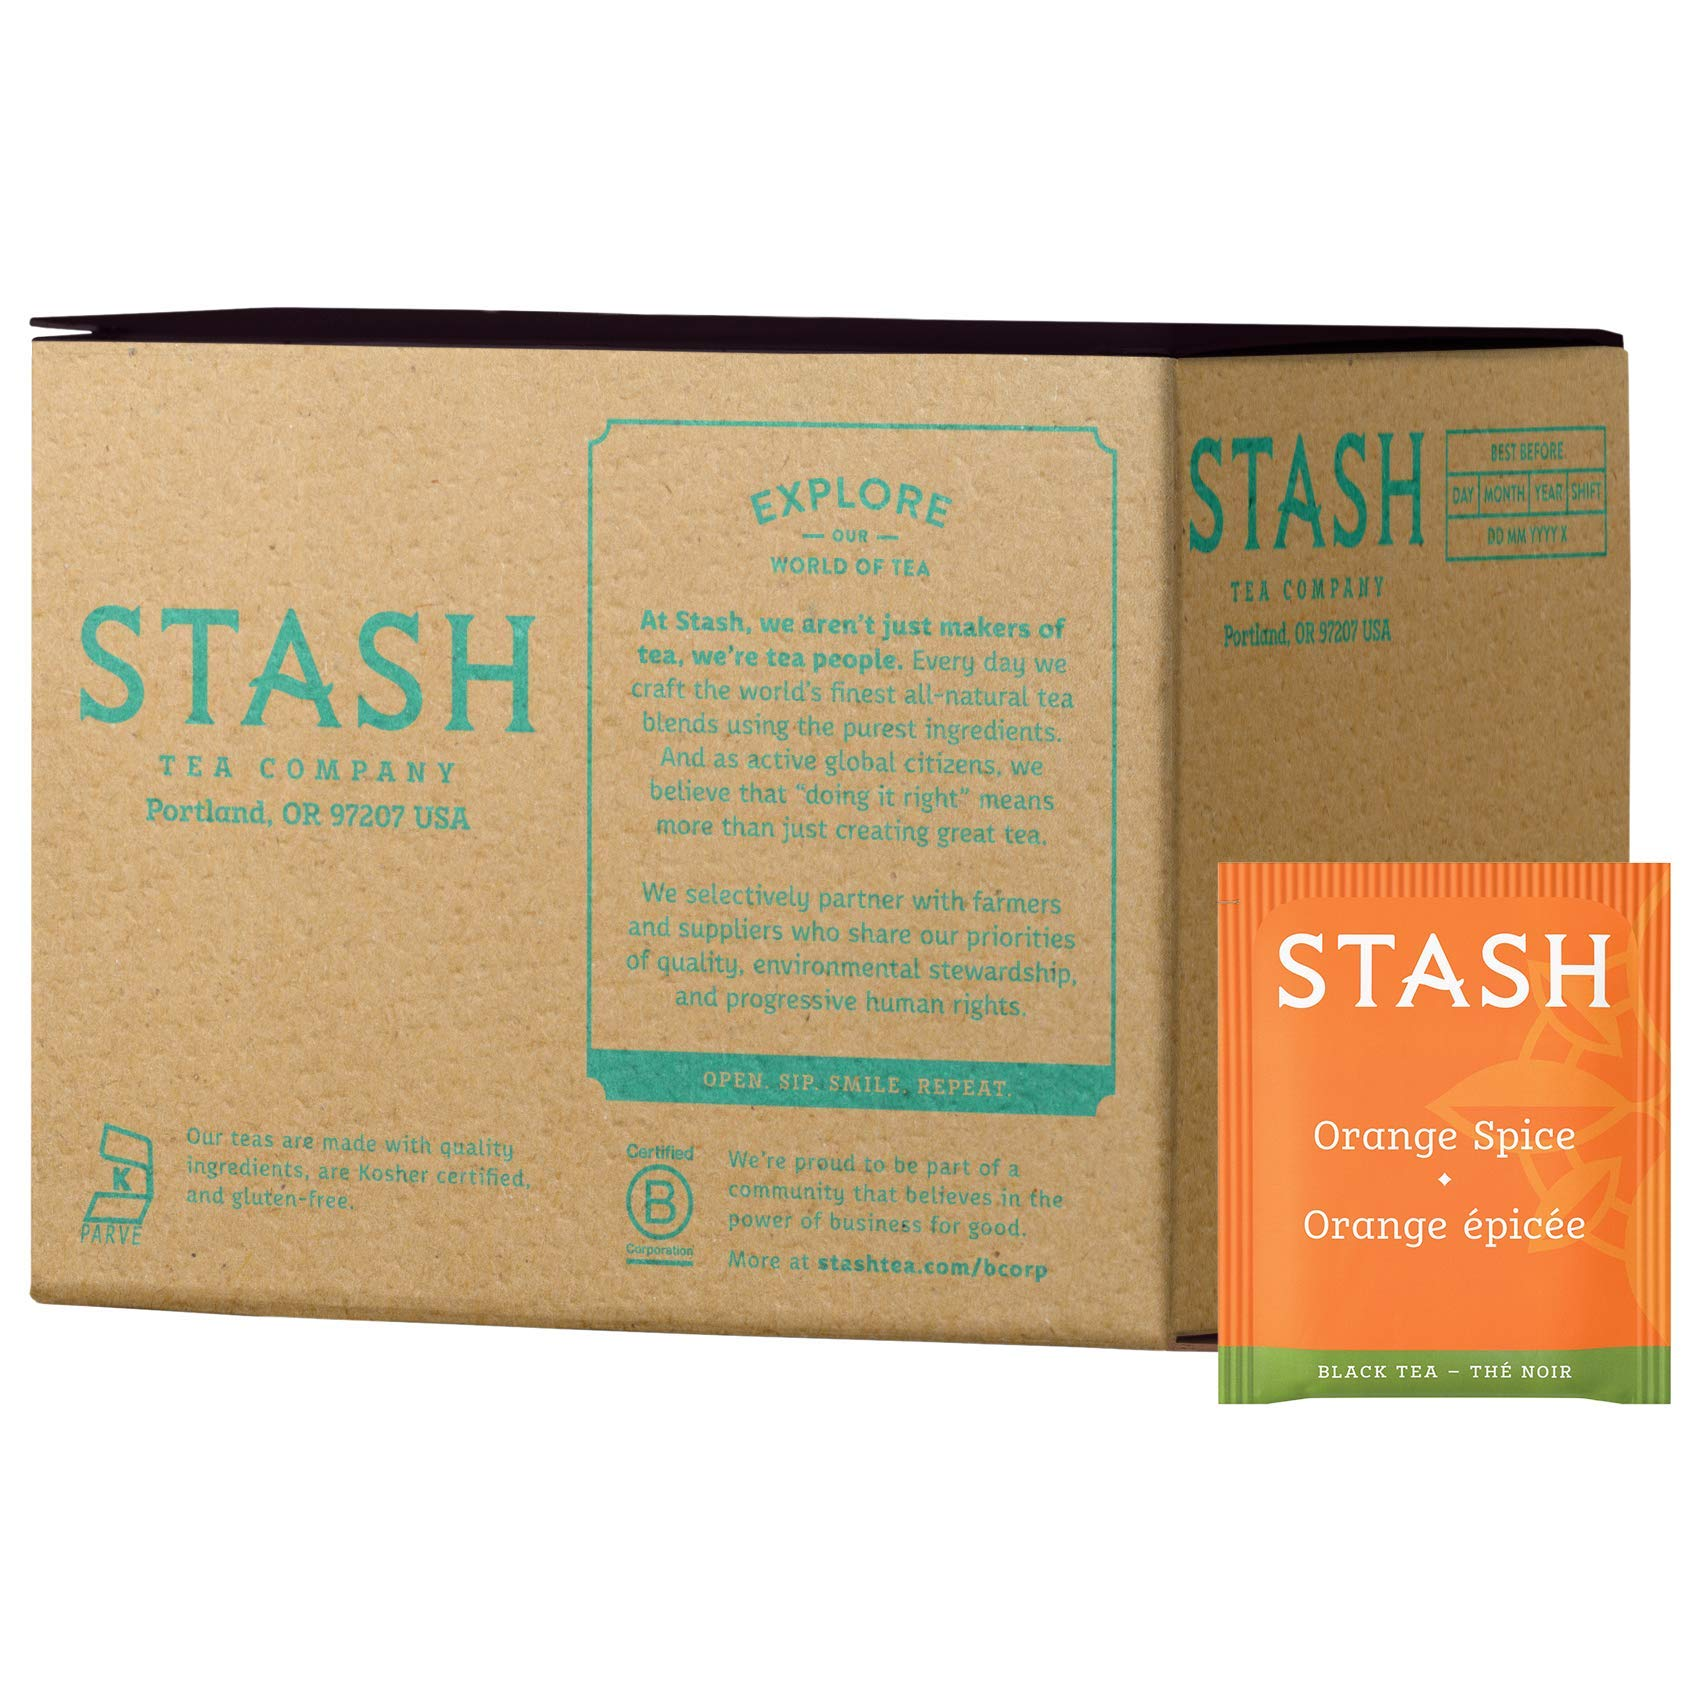 Stash Tea Orange Spice Black Tea 100 Count Box of Tea Bags in Foil (packaging may vary) Individual Black Tea Bags for Use in Teapots Mugs or Cups, Brew Hot Tea or Iced Tea by Stash Tea